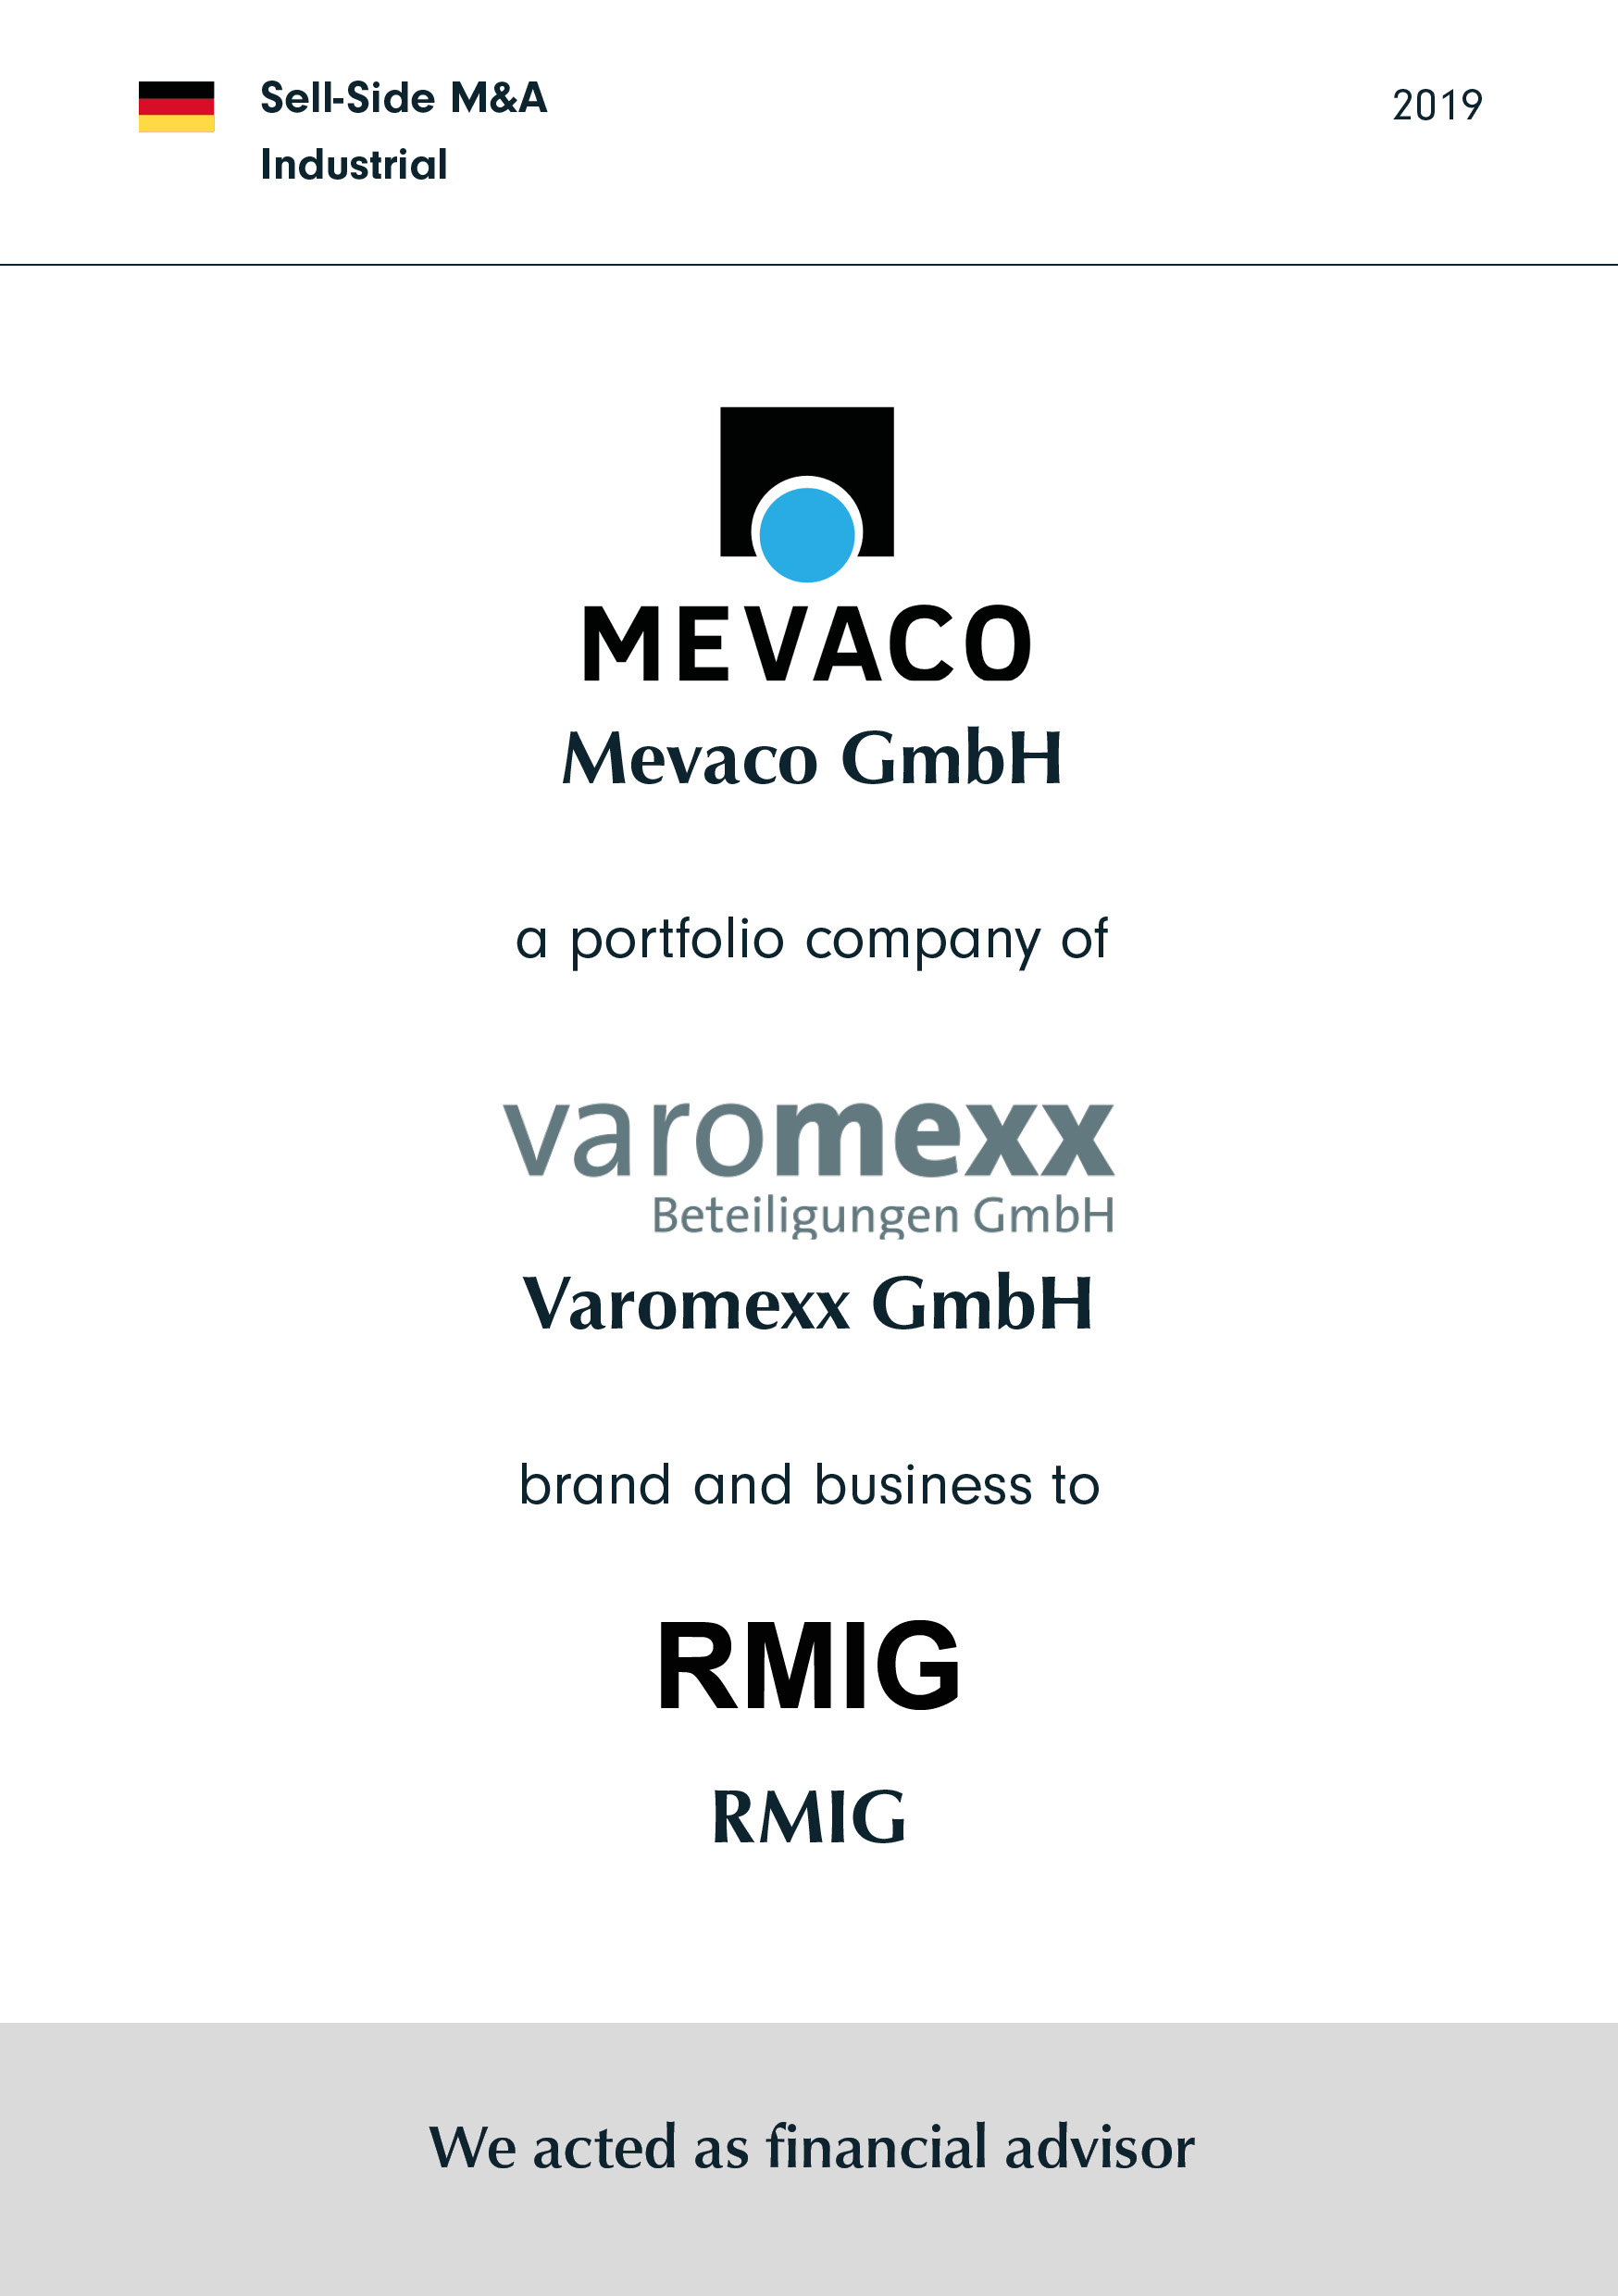 MEVACO | a portfolio company of | varomexx | has been sold to | RMIG